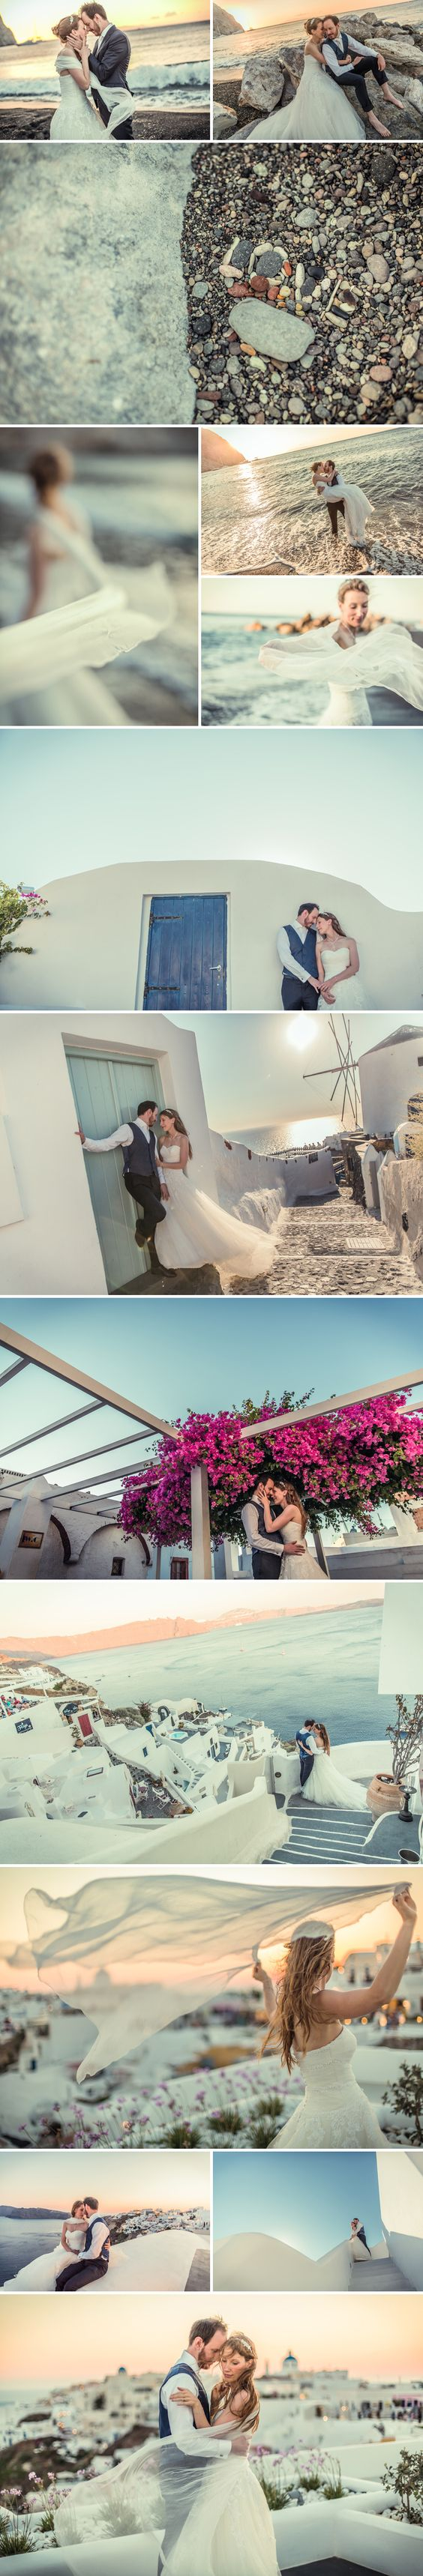 mariage, wedding, santorin, greece, santorini